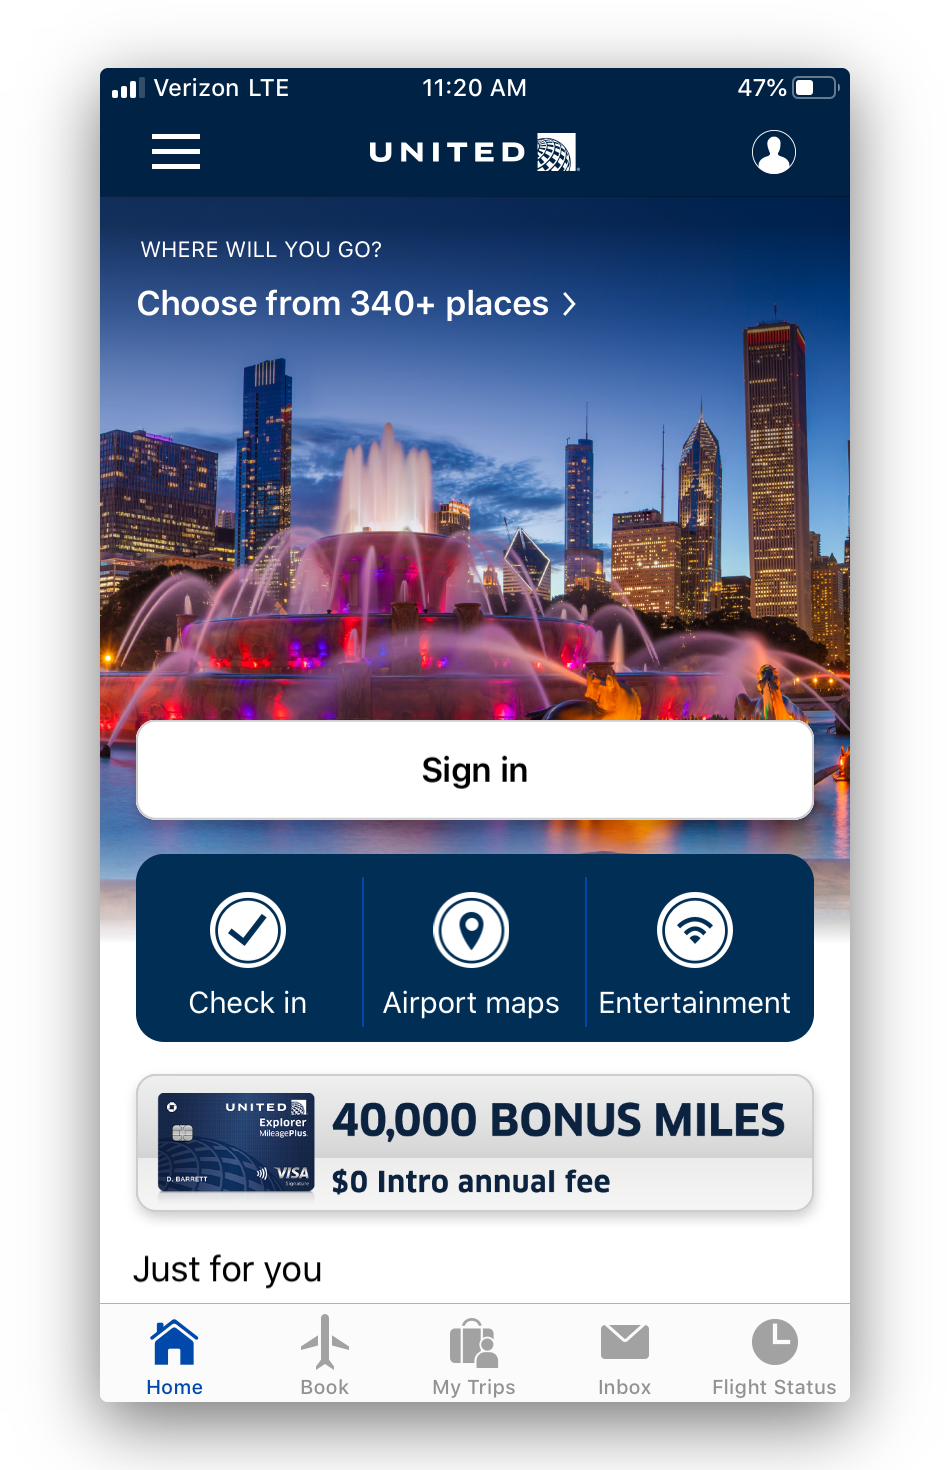 second screen in the United Airlines app